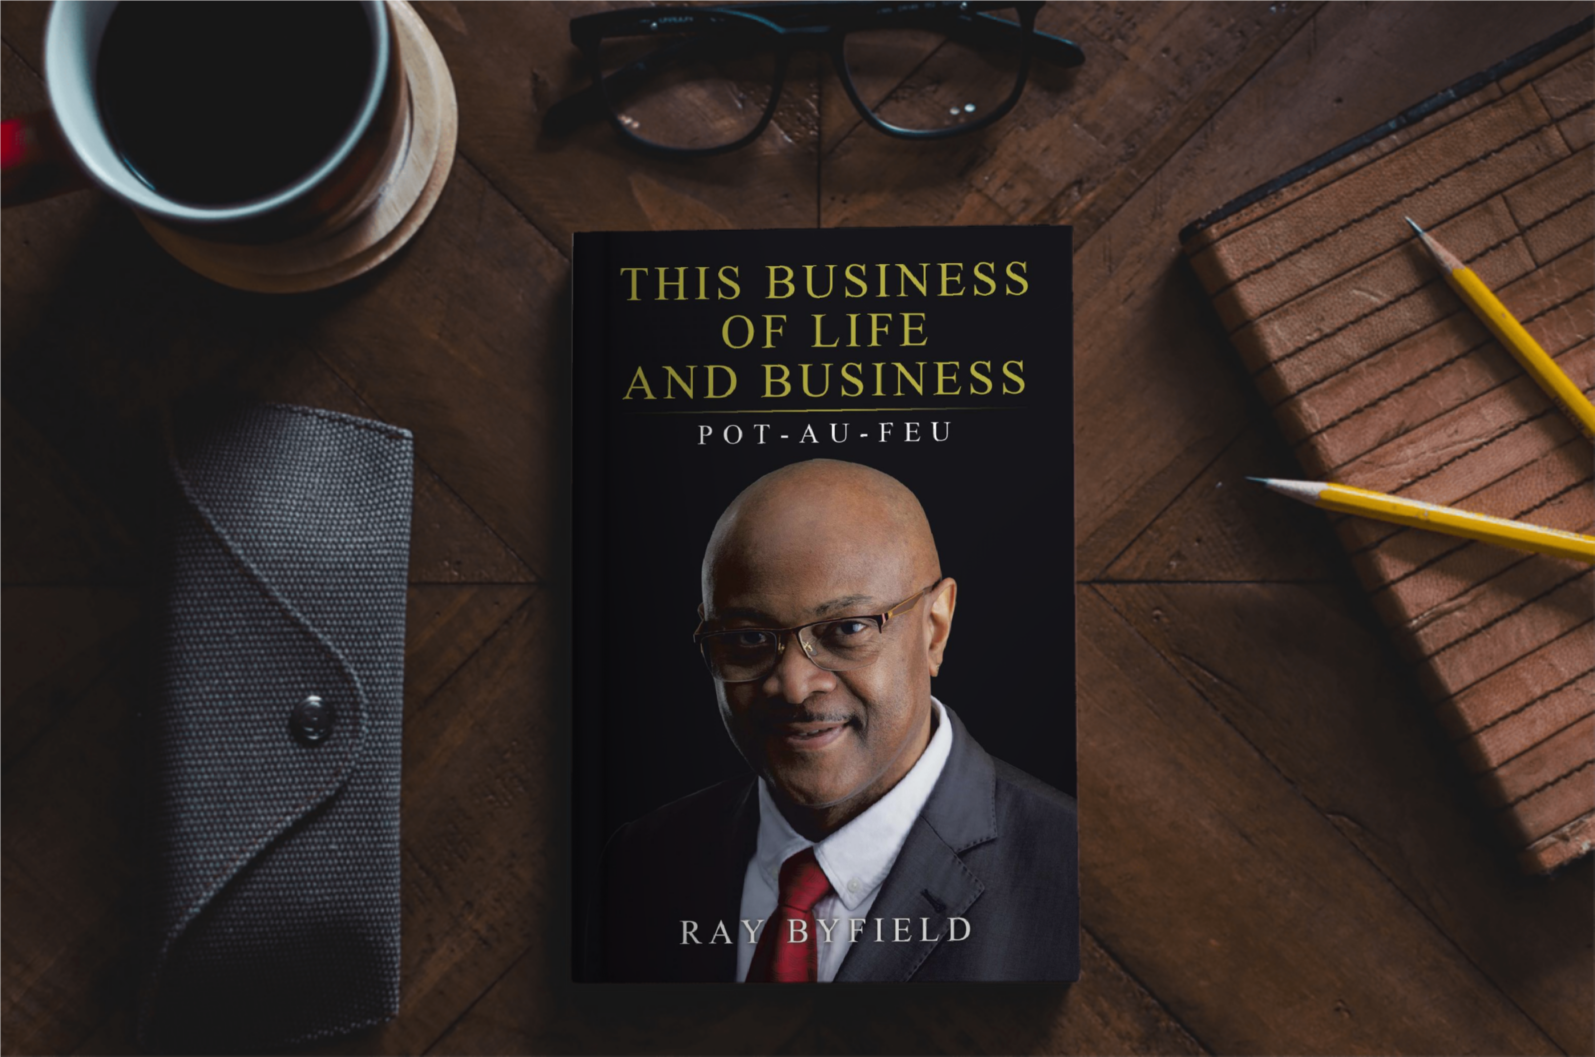 Celebrate the Launch of Ray Byfield's First Book!